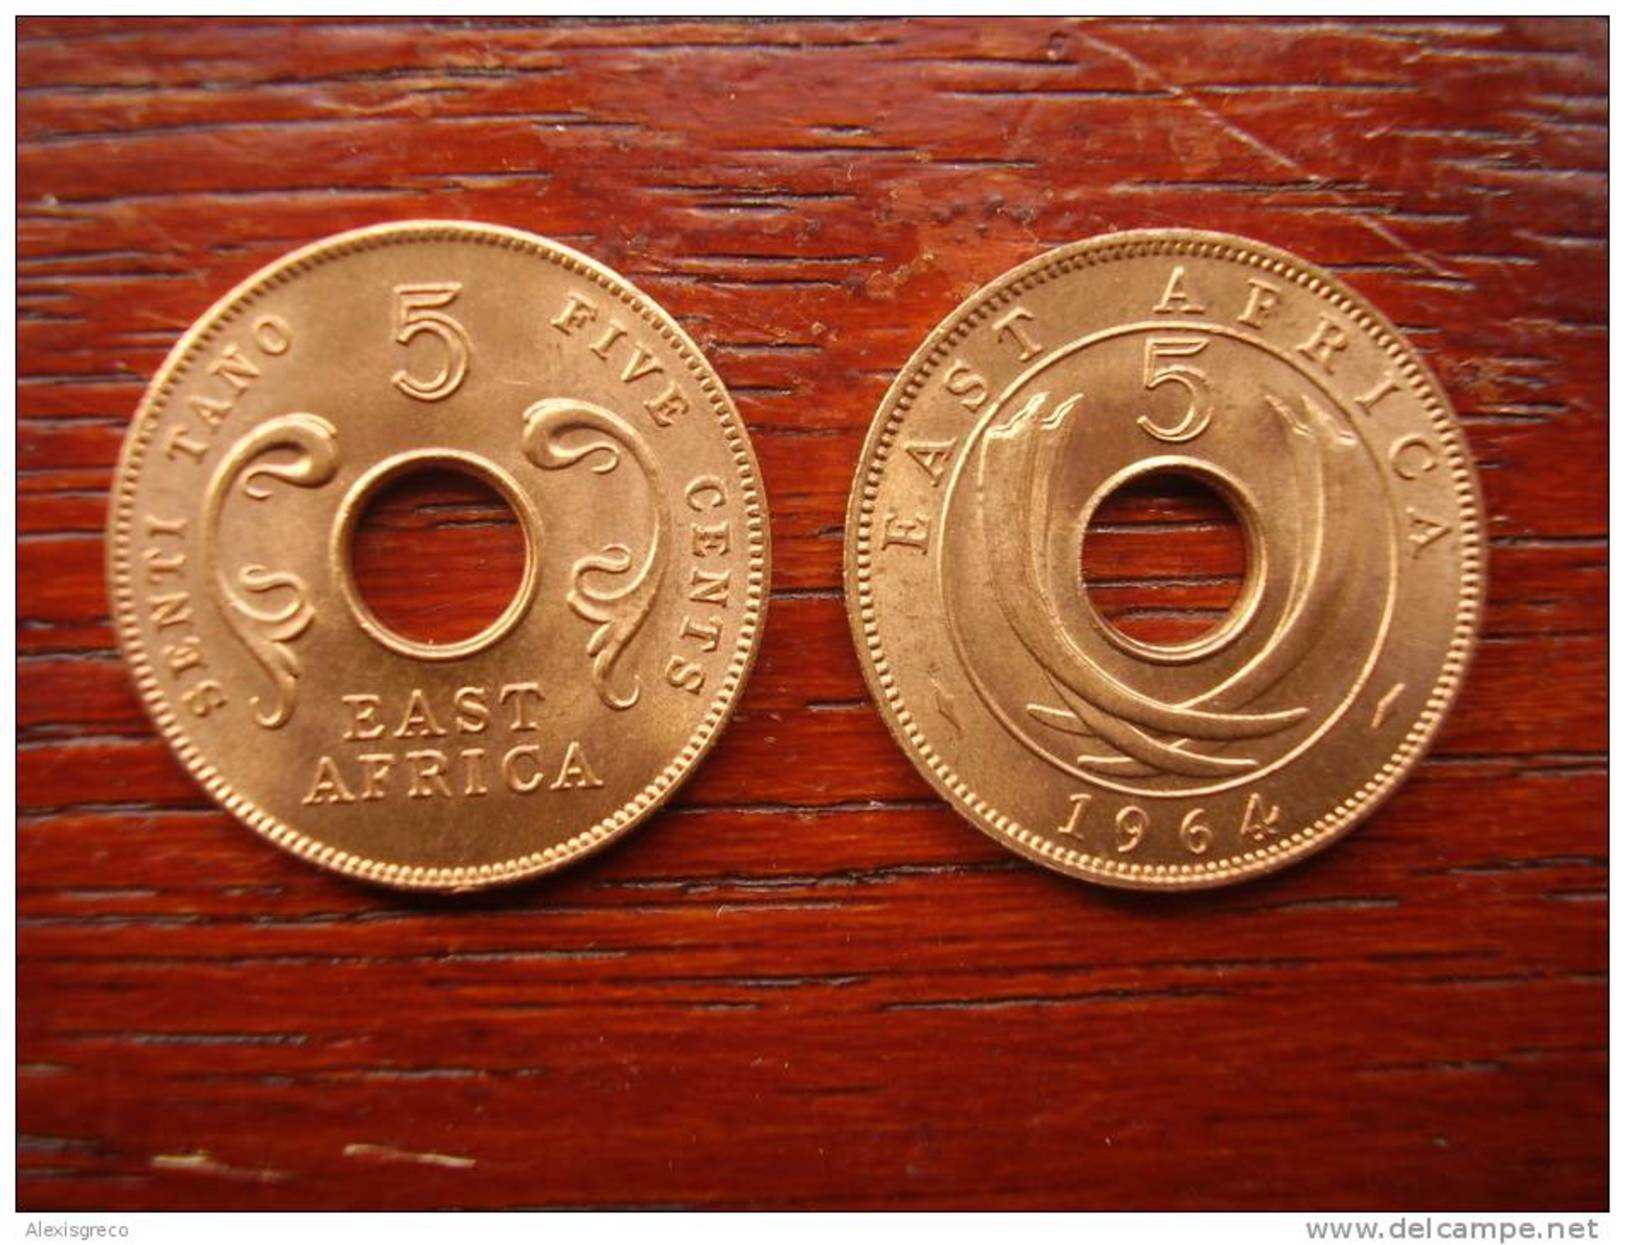 BRITISH EAST AFRICA 1964 UNCIRCULATED COIN FIVE CENTS BRONZE (Post-Independence Issue). - British Colony